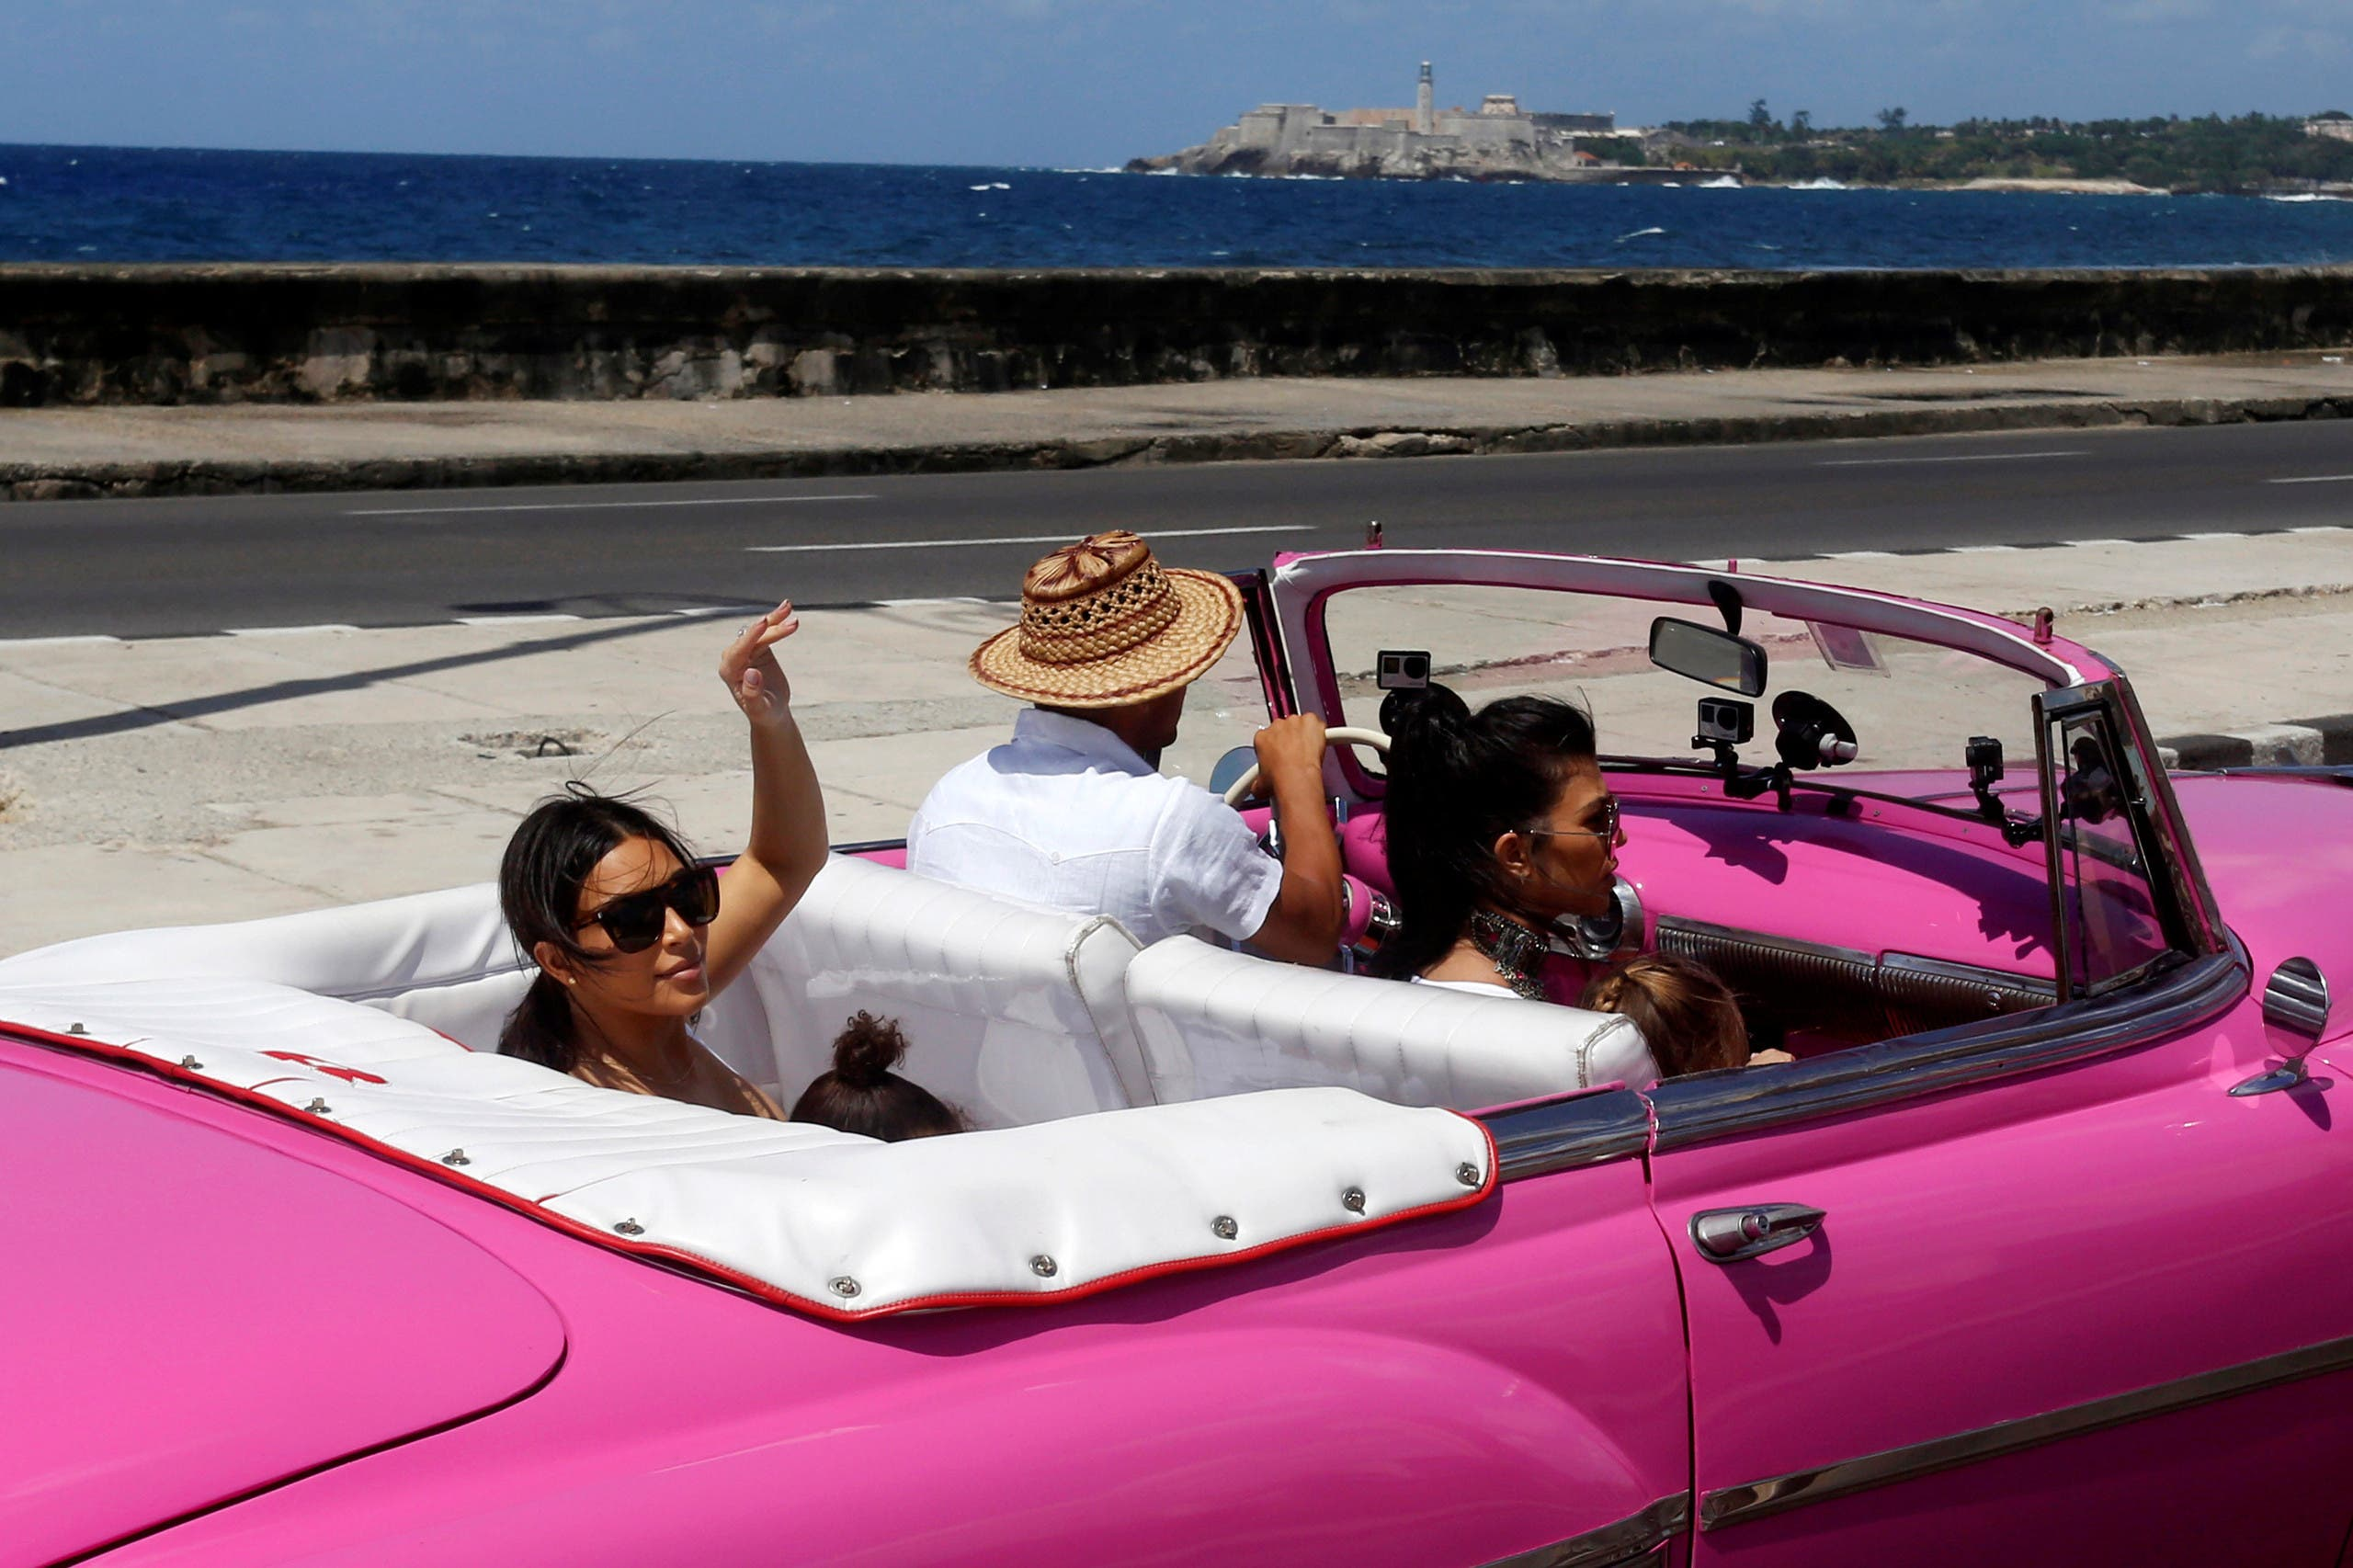 Kim Kardashian waves from the backseat of a vintage car at the seafront Malecon in Havana, Cuba, May 5, 2016. (Reuters)